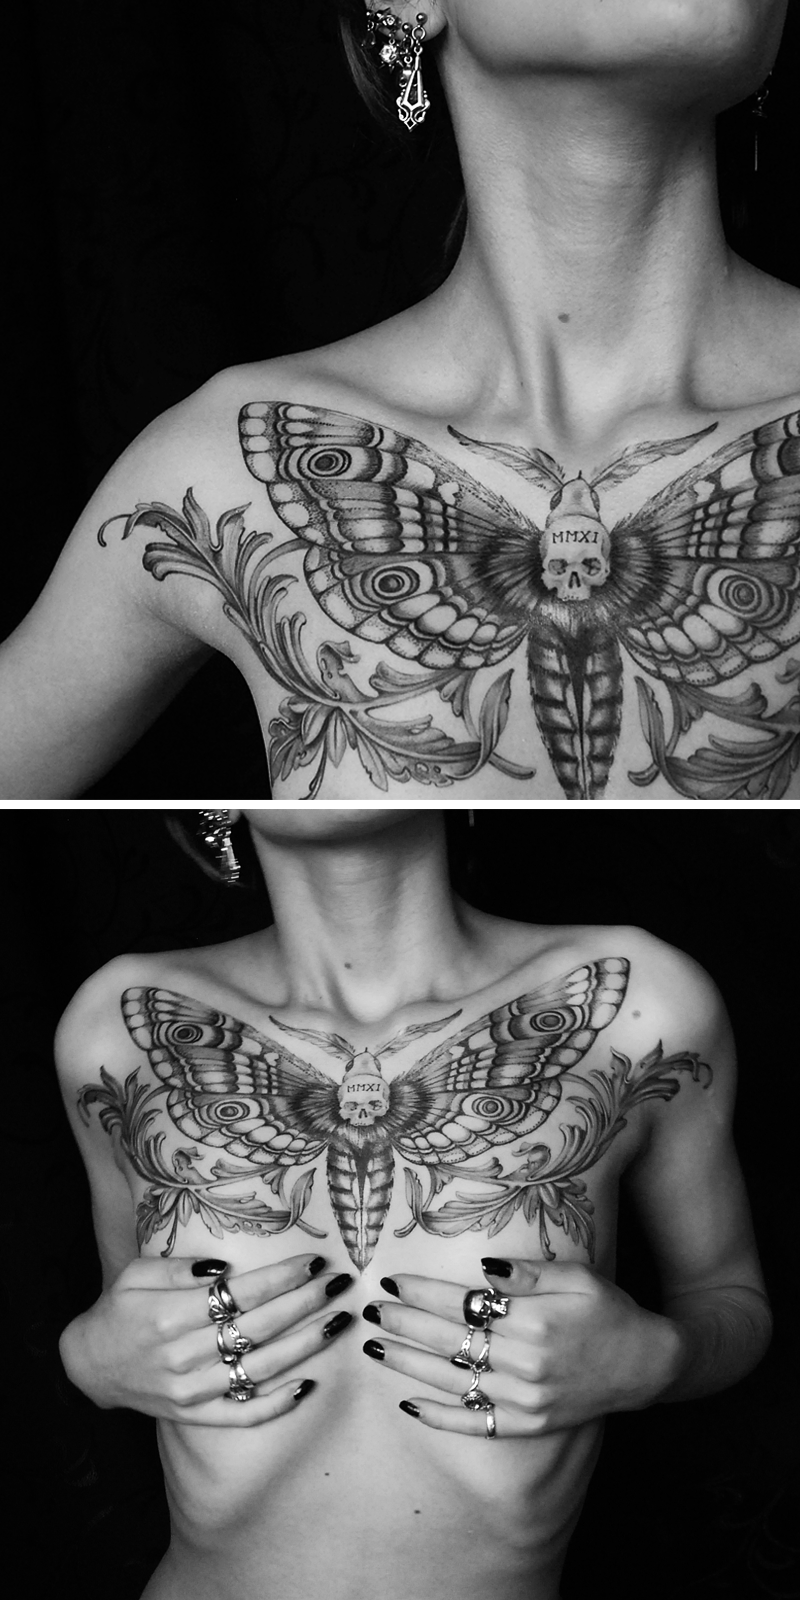 Now, Normally I'm Not A Fan Of Chest Tattoos, But This Is